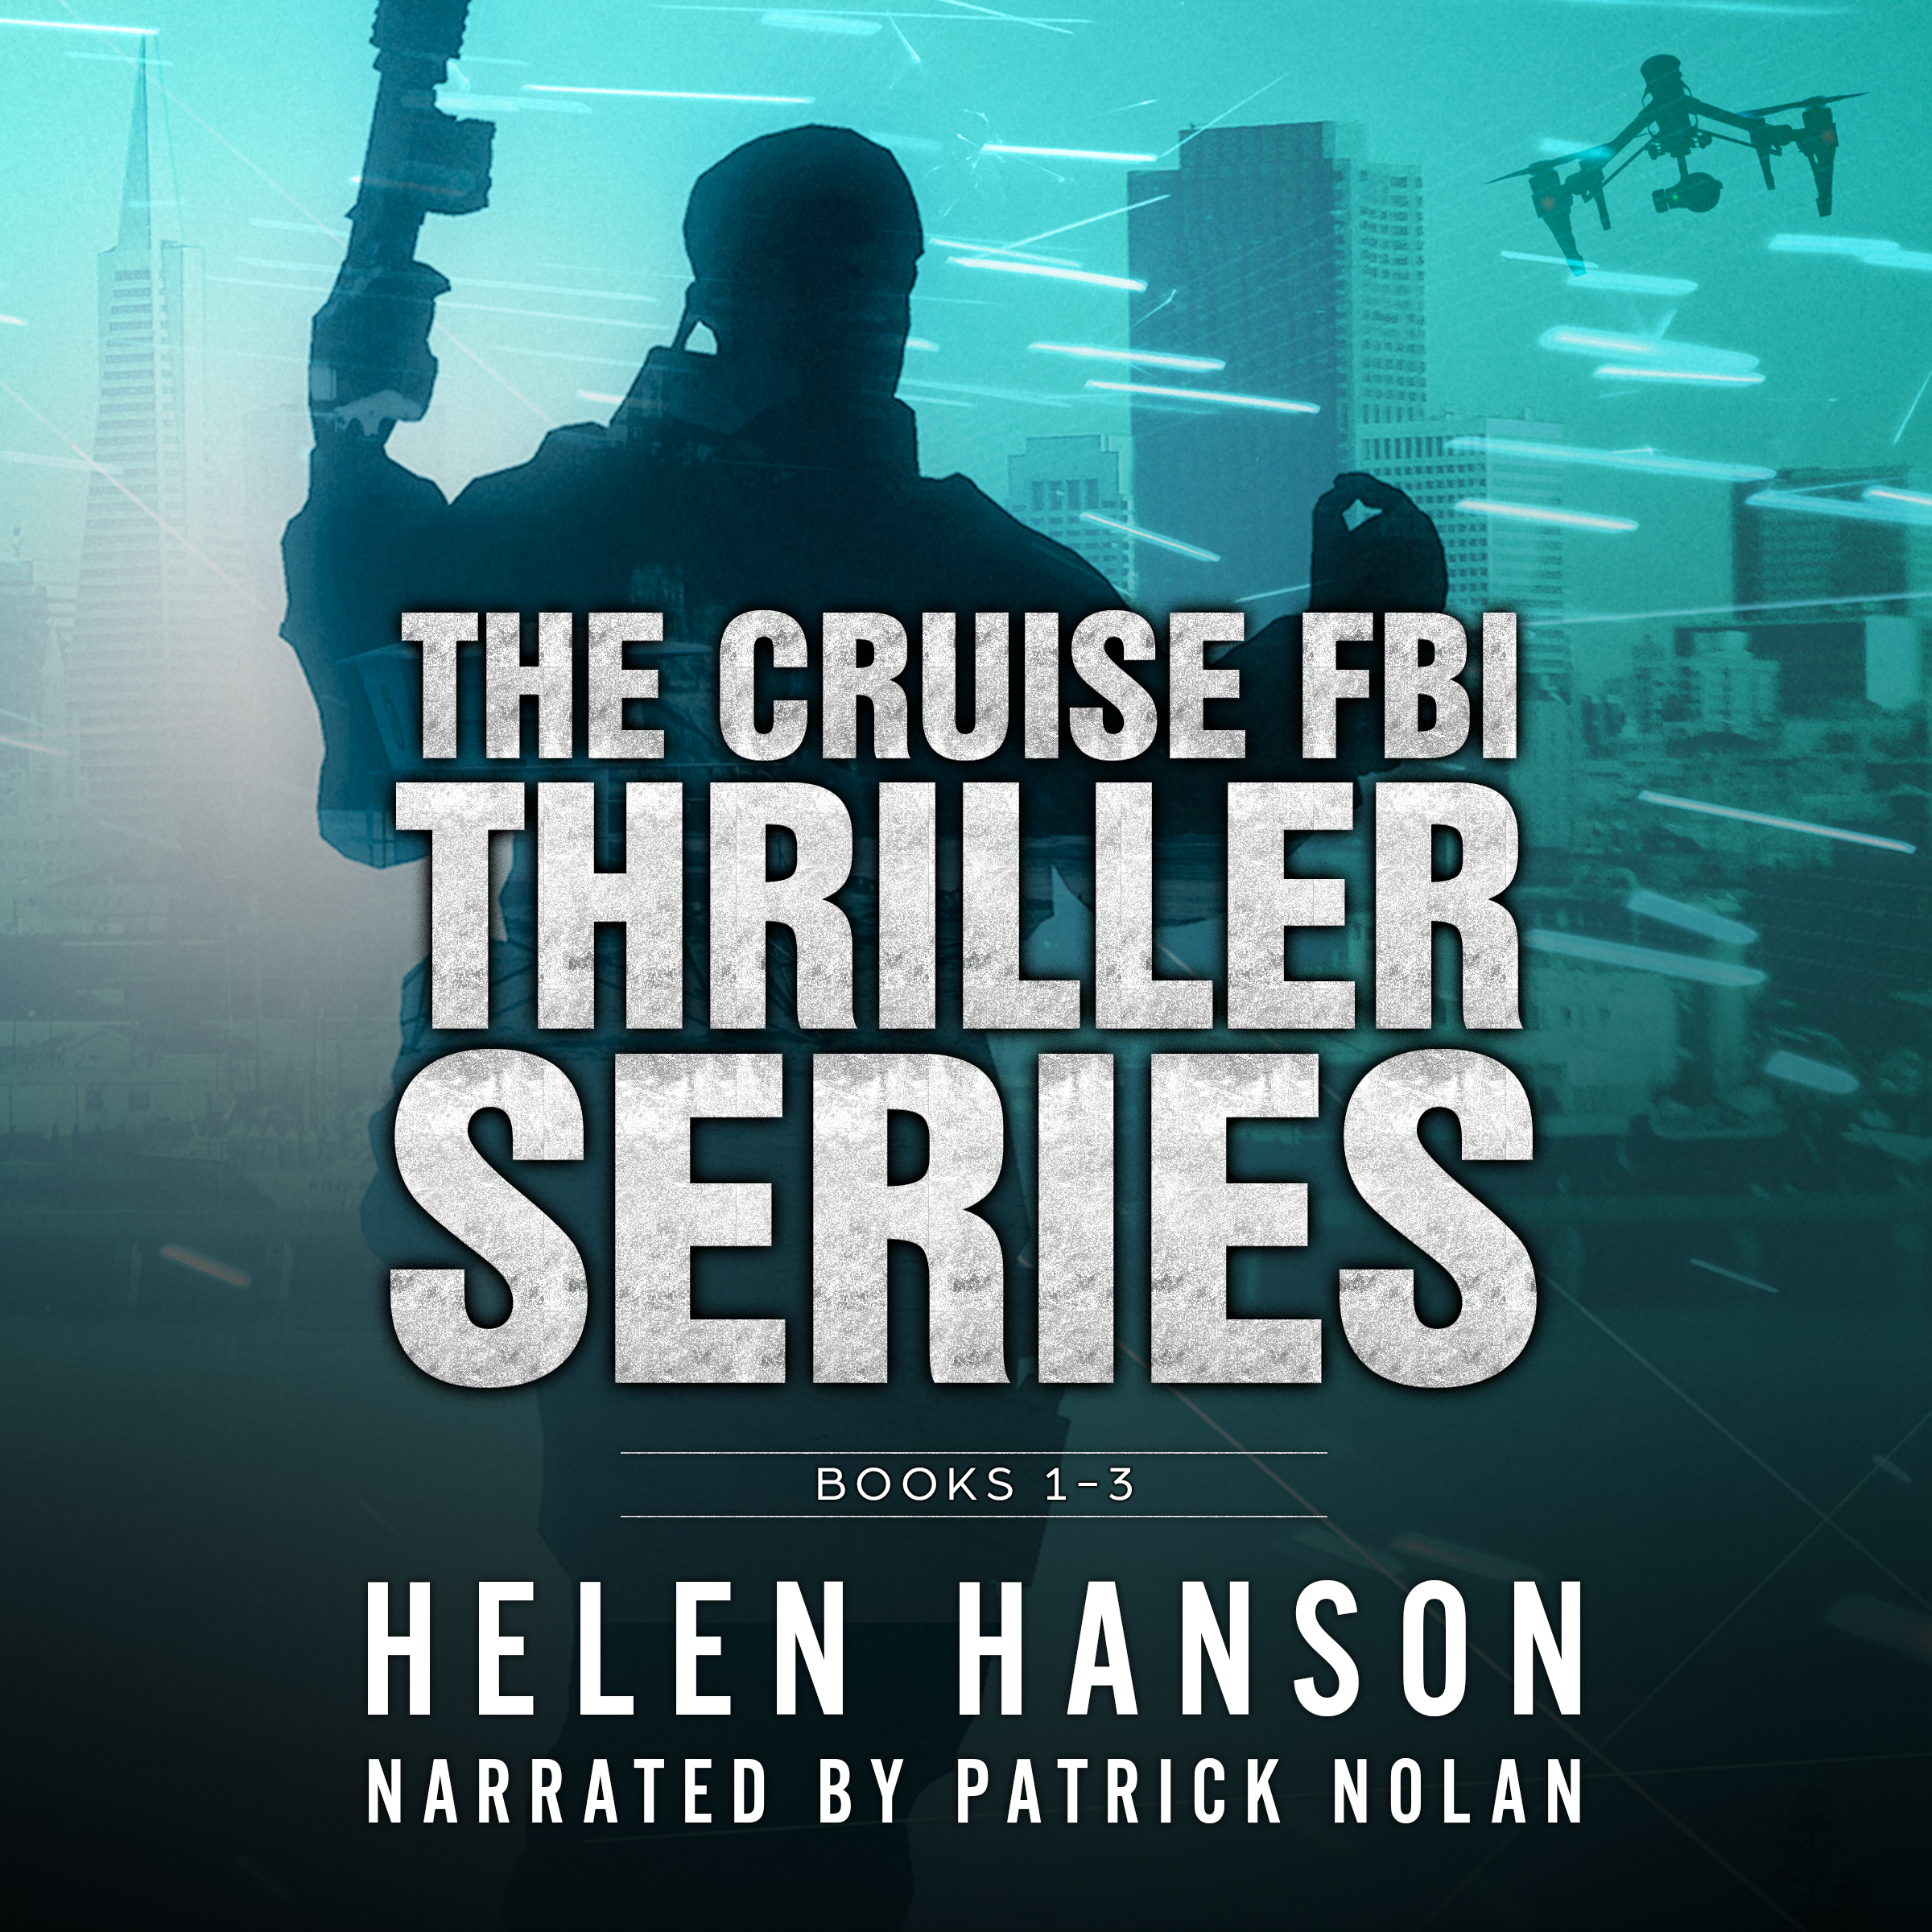 The Cruise FBI Thriller Box Set - Books 1 - 3, hacker, cyber crime, cia thrillers, spy novels, espionage and spy thrillers, fbi thrillers, terrorism thrillers, technothrillers, psychological thriller, drone wars, police procedural, terrorist thrillers, mexico, drug cartel, audiobook, audible, itunes